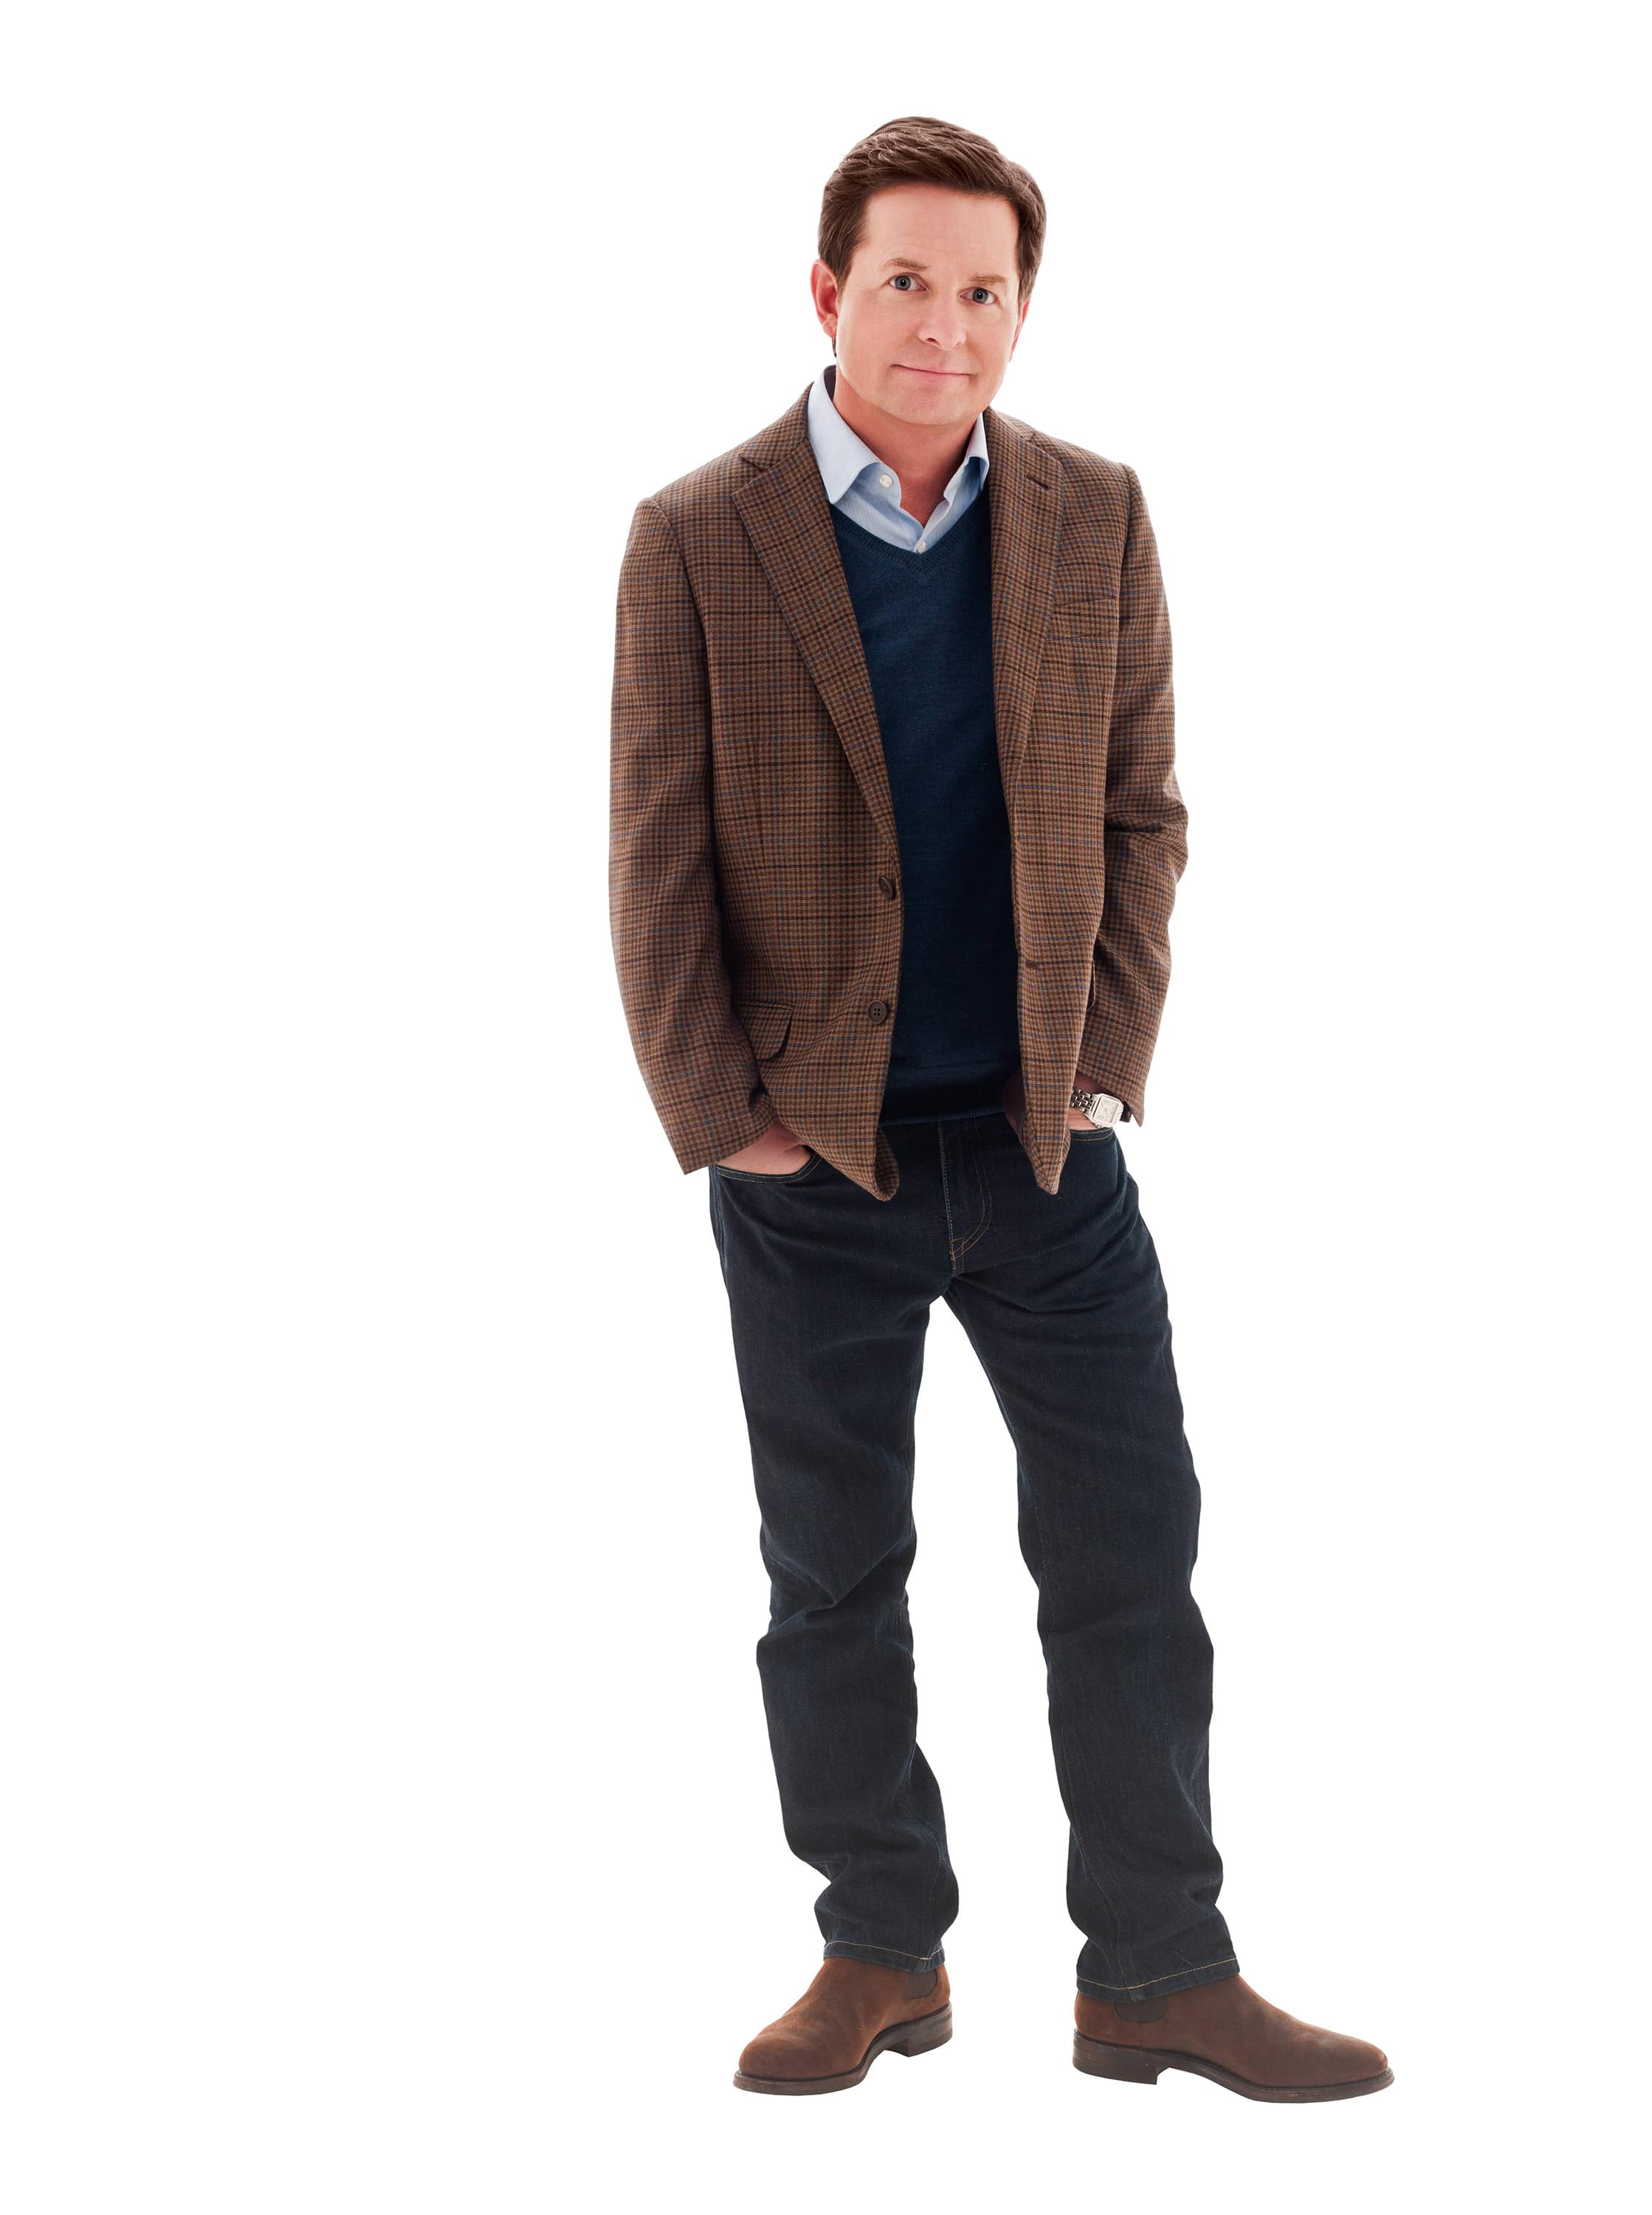 Michael J. Fox For mobile